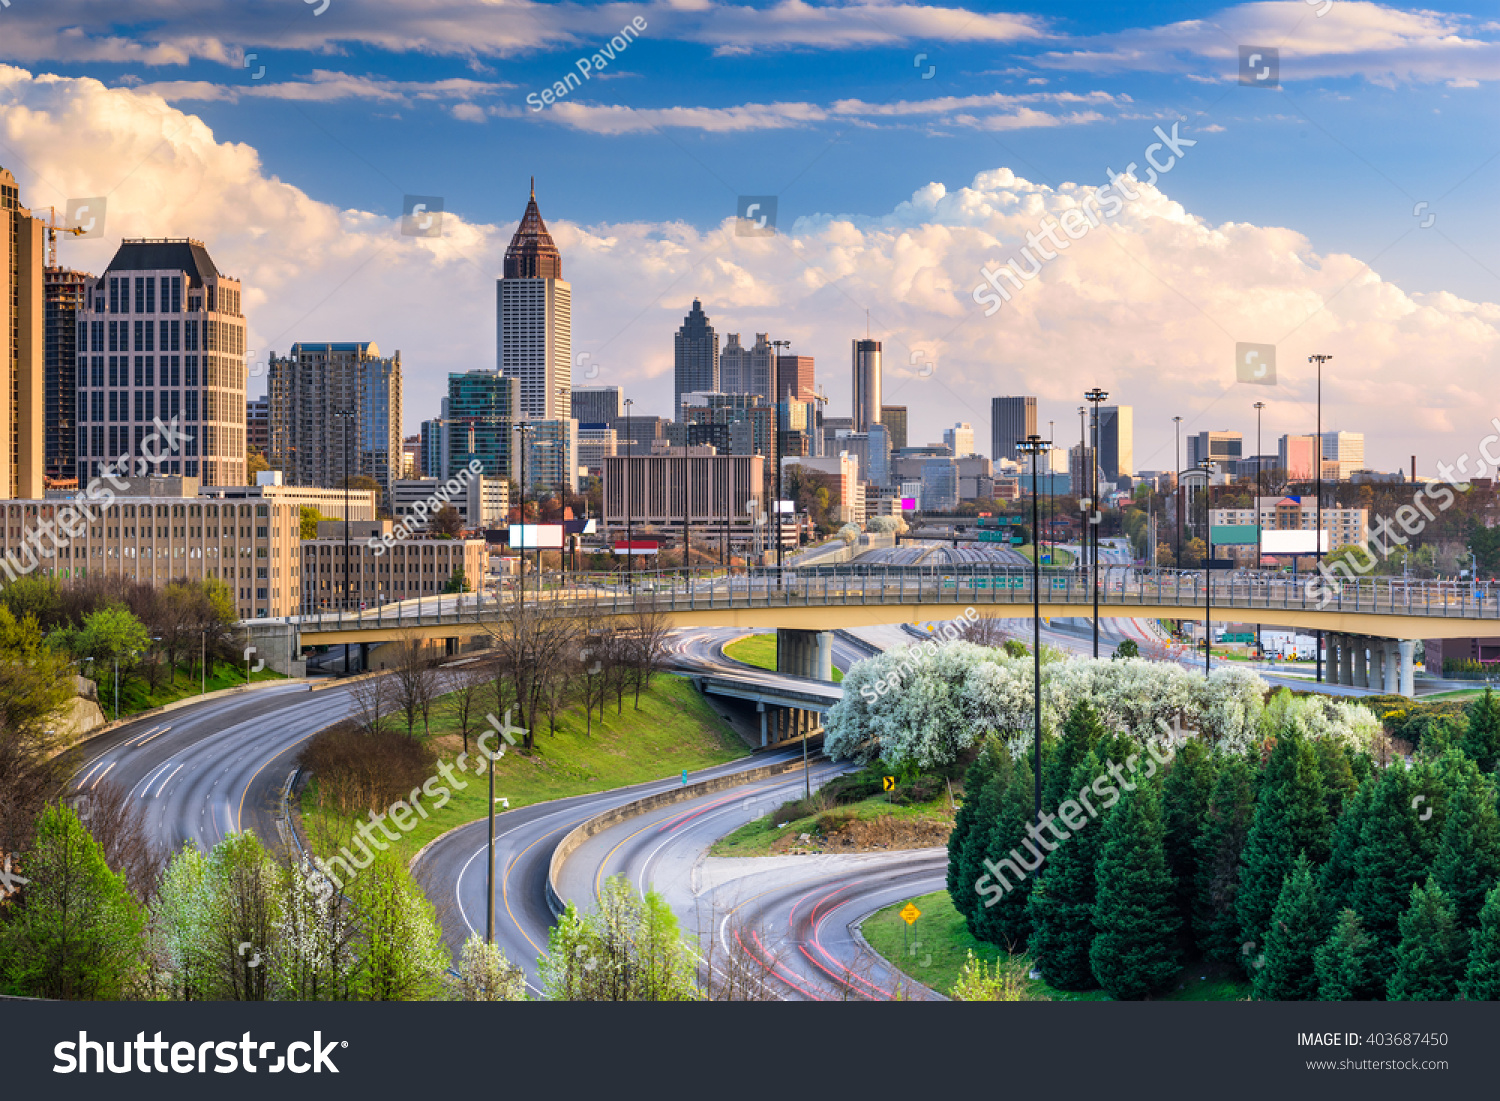 atlanta georgia usa downtown skyline stock photo 403687450 shutterstock. Black Bedroom Furniture Sets. Home Design Ideas